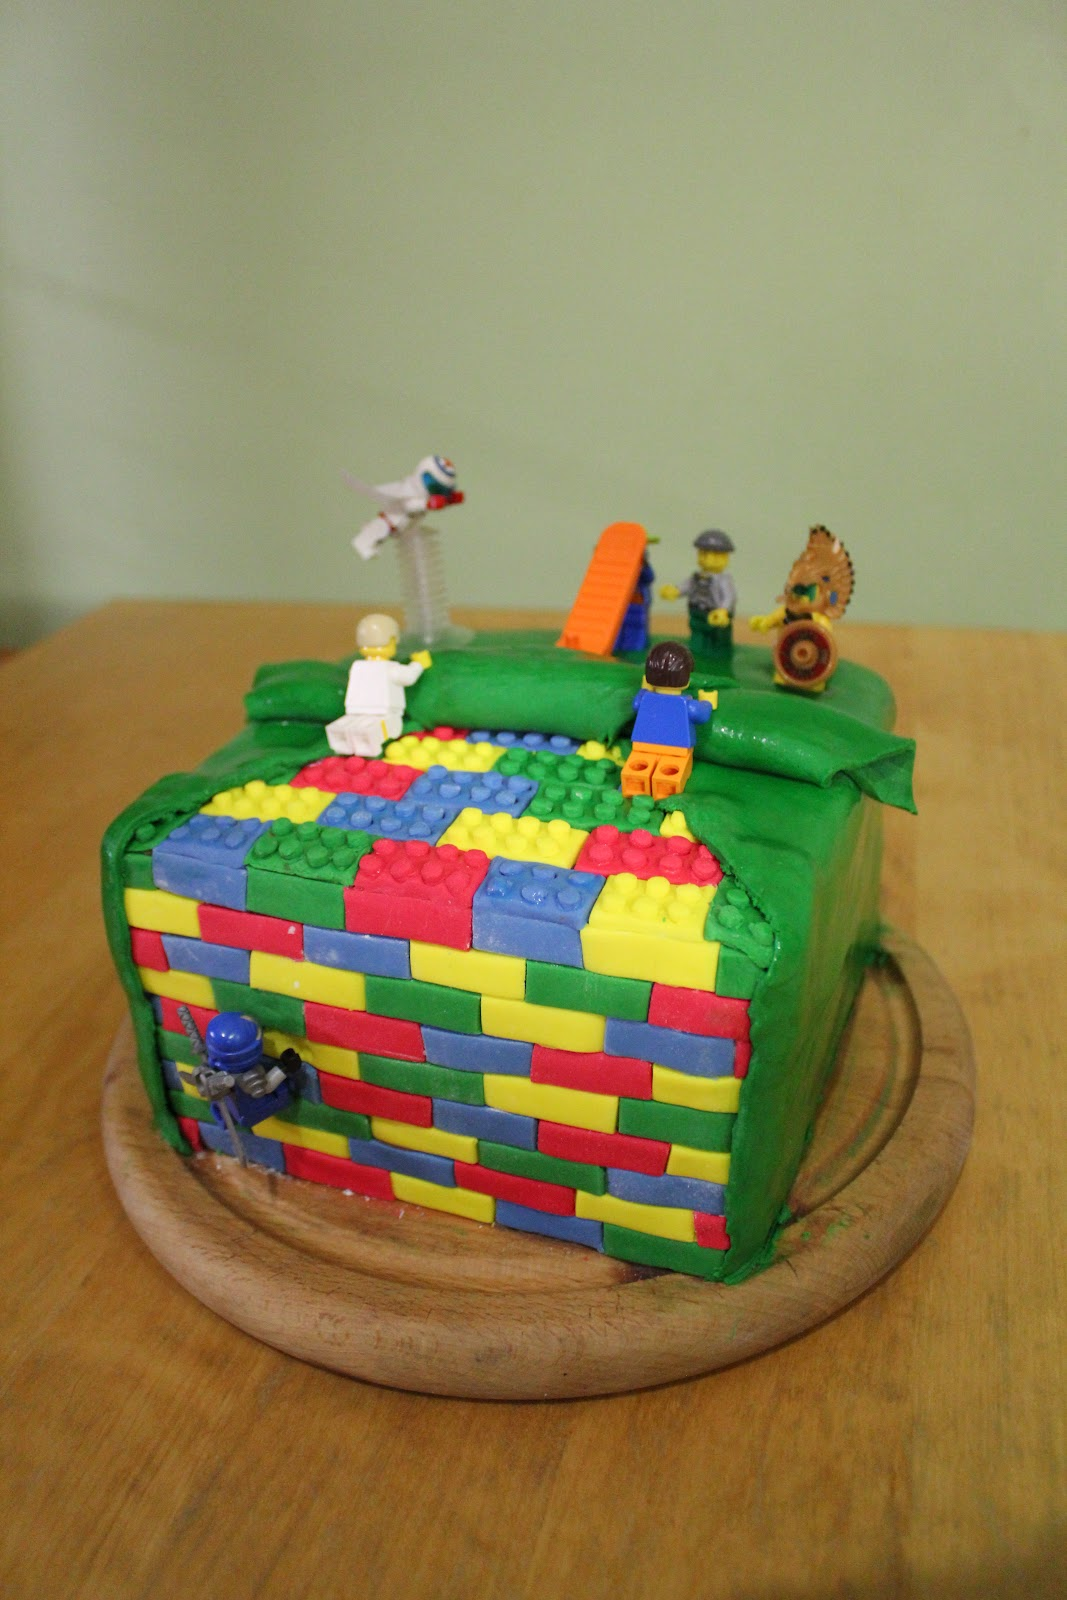 Cake Design For 10 Year Old Boy : Chaos, Kids, Crochet and Cake: 10th Birthday Cake - Lego ...